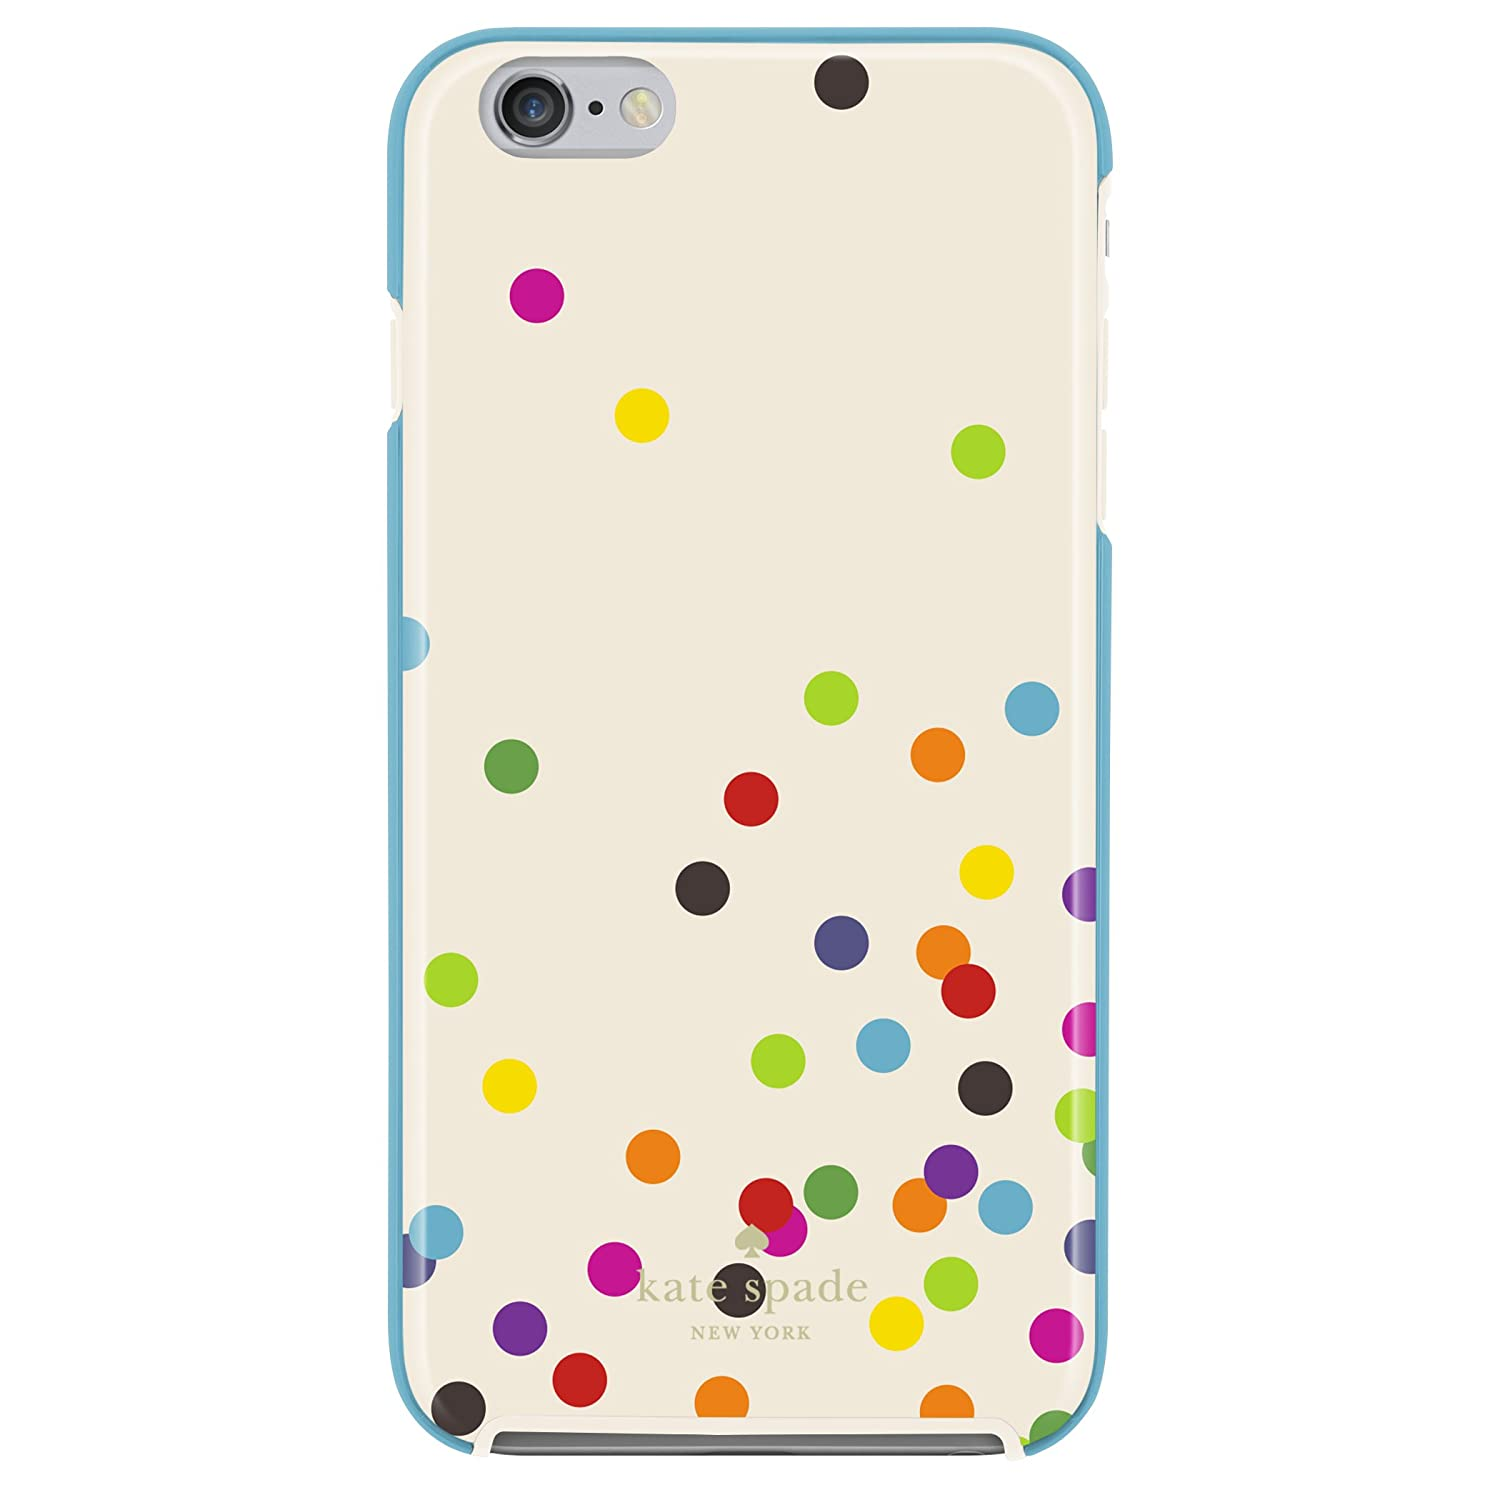 best service 84c80 e900e kate spade new york iPhone 6s Plus Case [Shock Absorbing] Cover fits both  iPhone 6 Plus, iPhone 6s Plus - Confetti Dot Multi